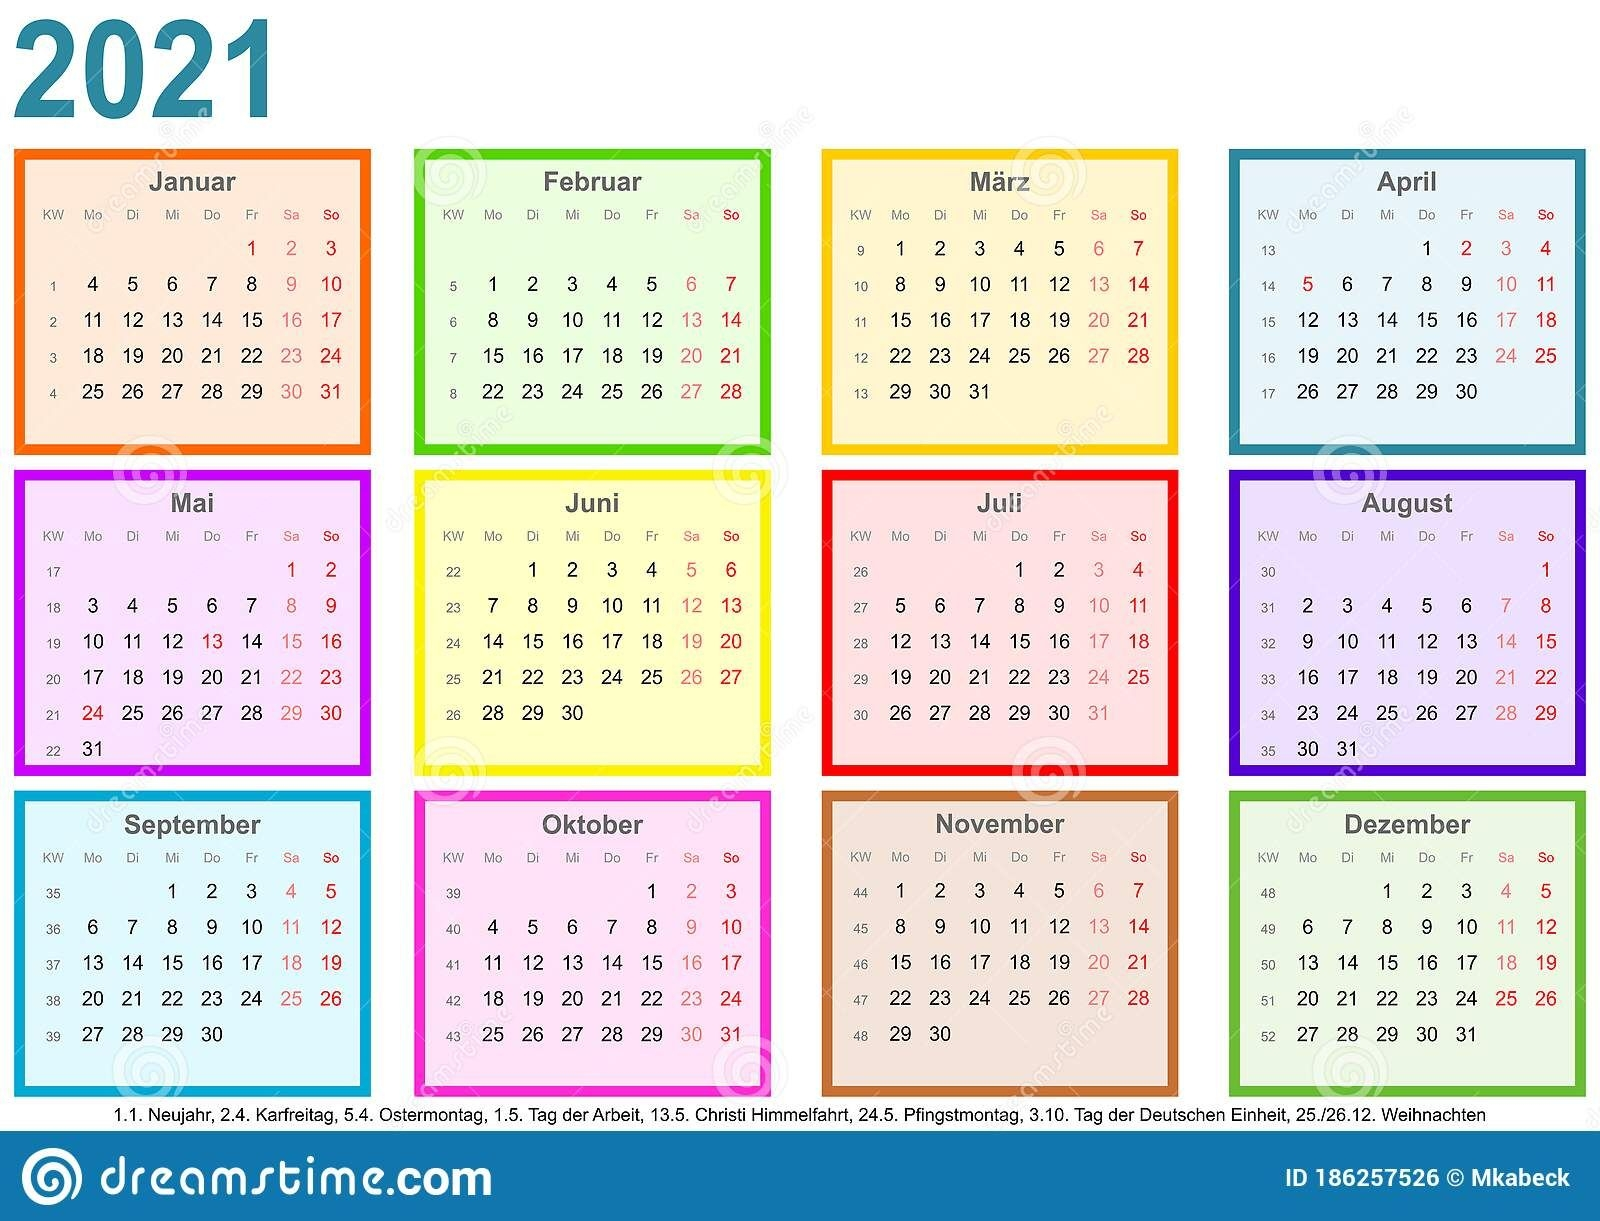 calendar 2021 each month different colored square ger